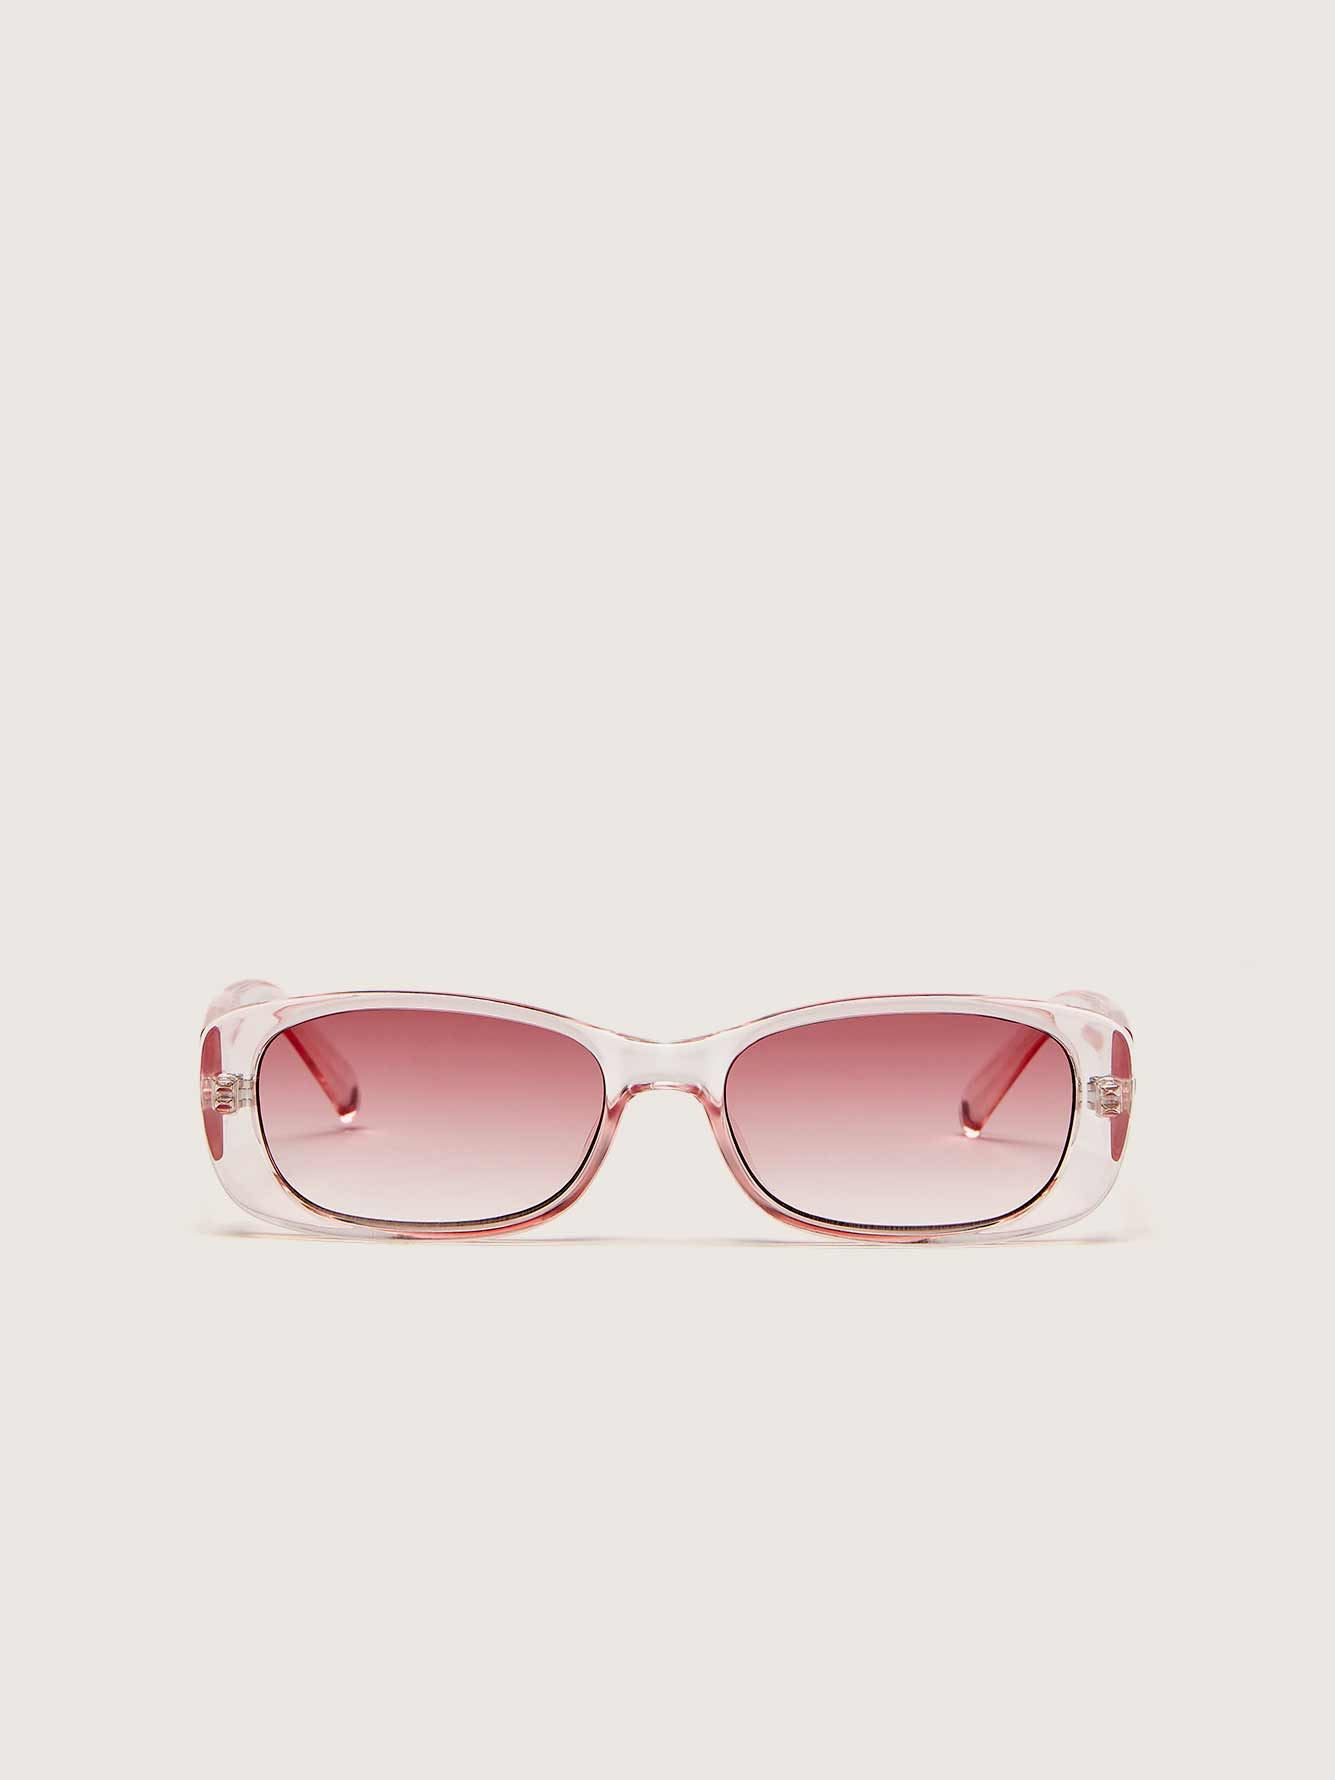 Sunglasses, Unreal - Le Specs